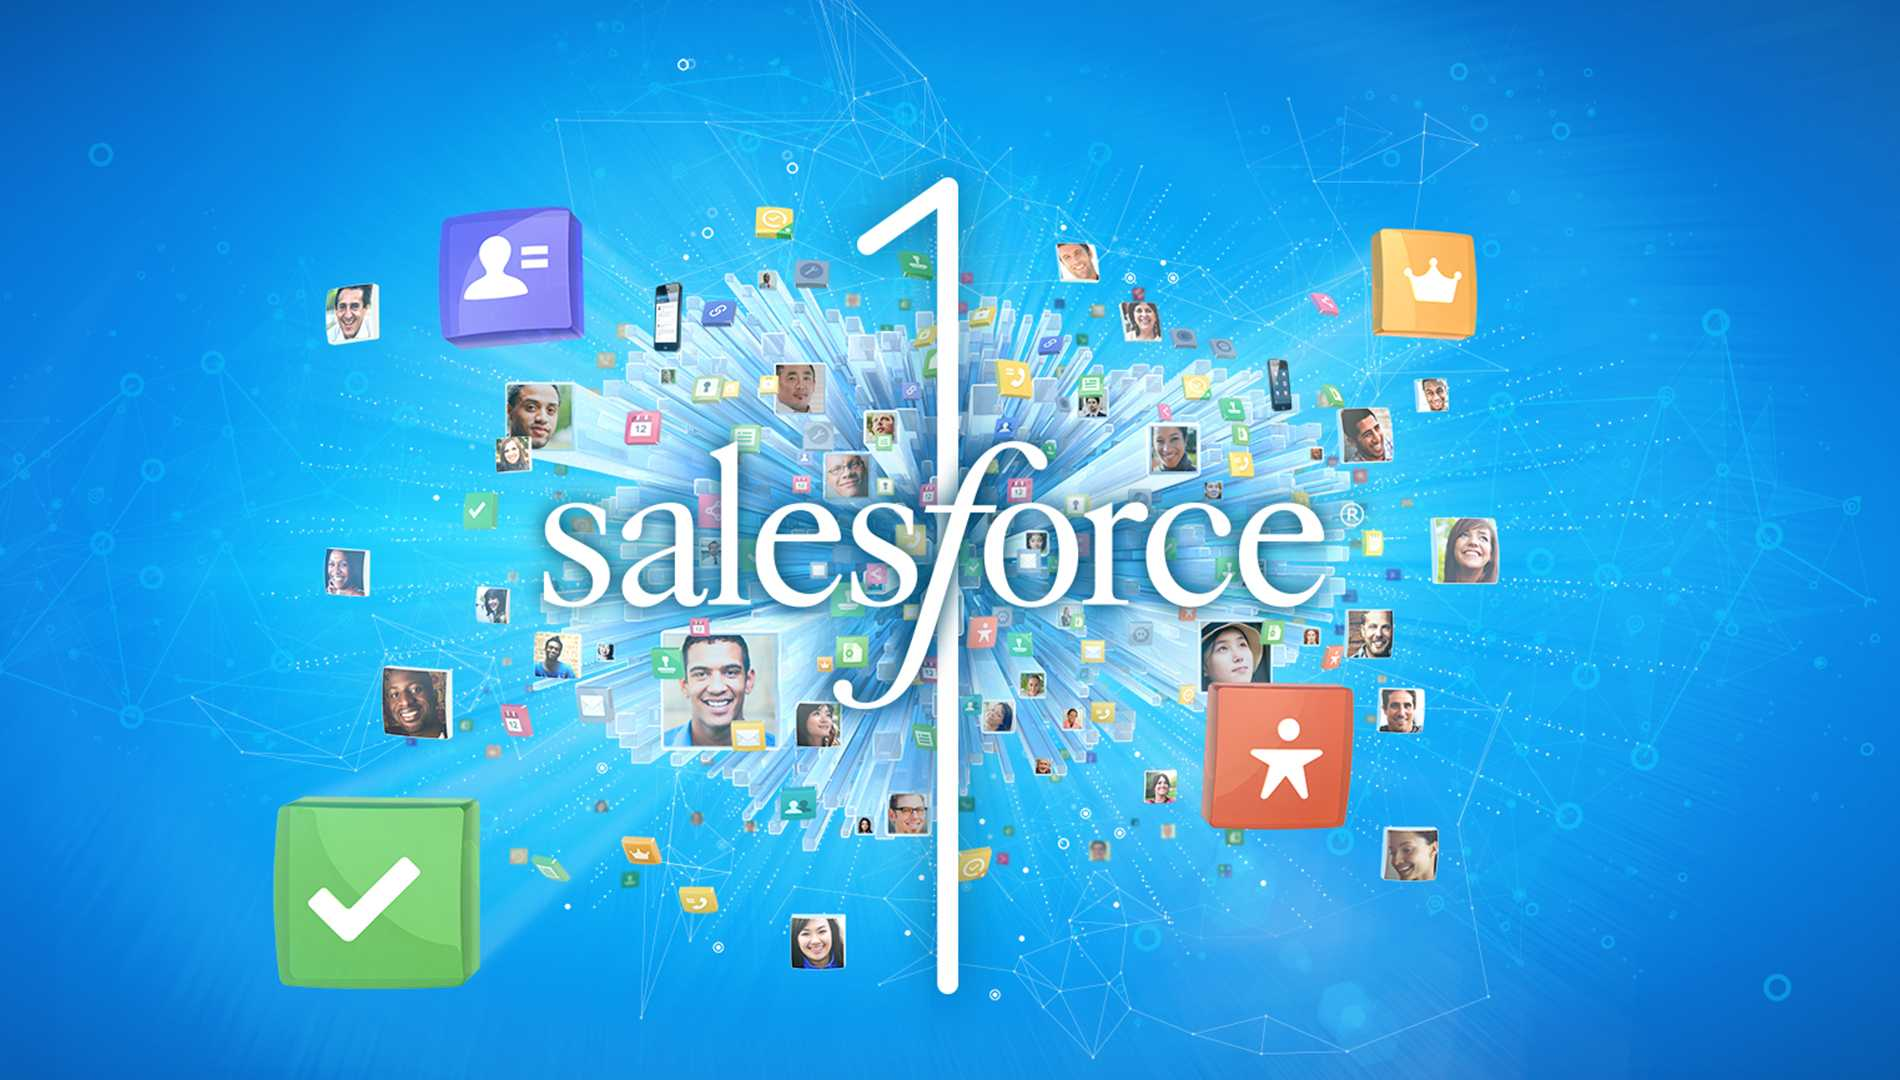 Salesforce confirme l'acquisition de Slack pour 27 milliards de dollars